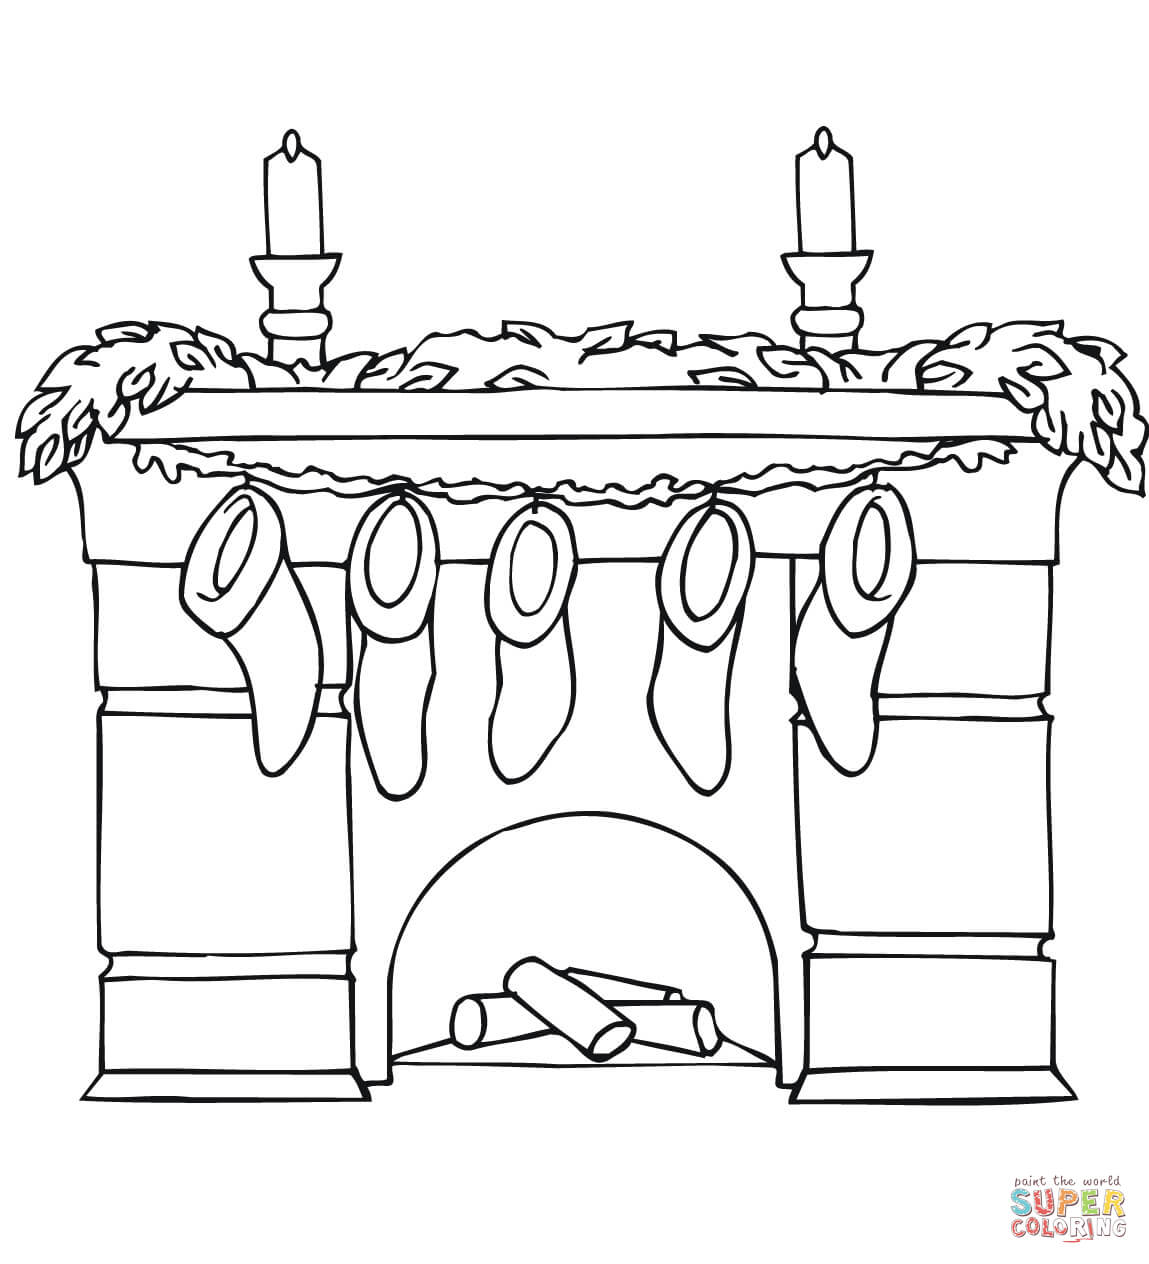 Christmas Coloring Stockings Template With Fireplace Mantel Holding Page